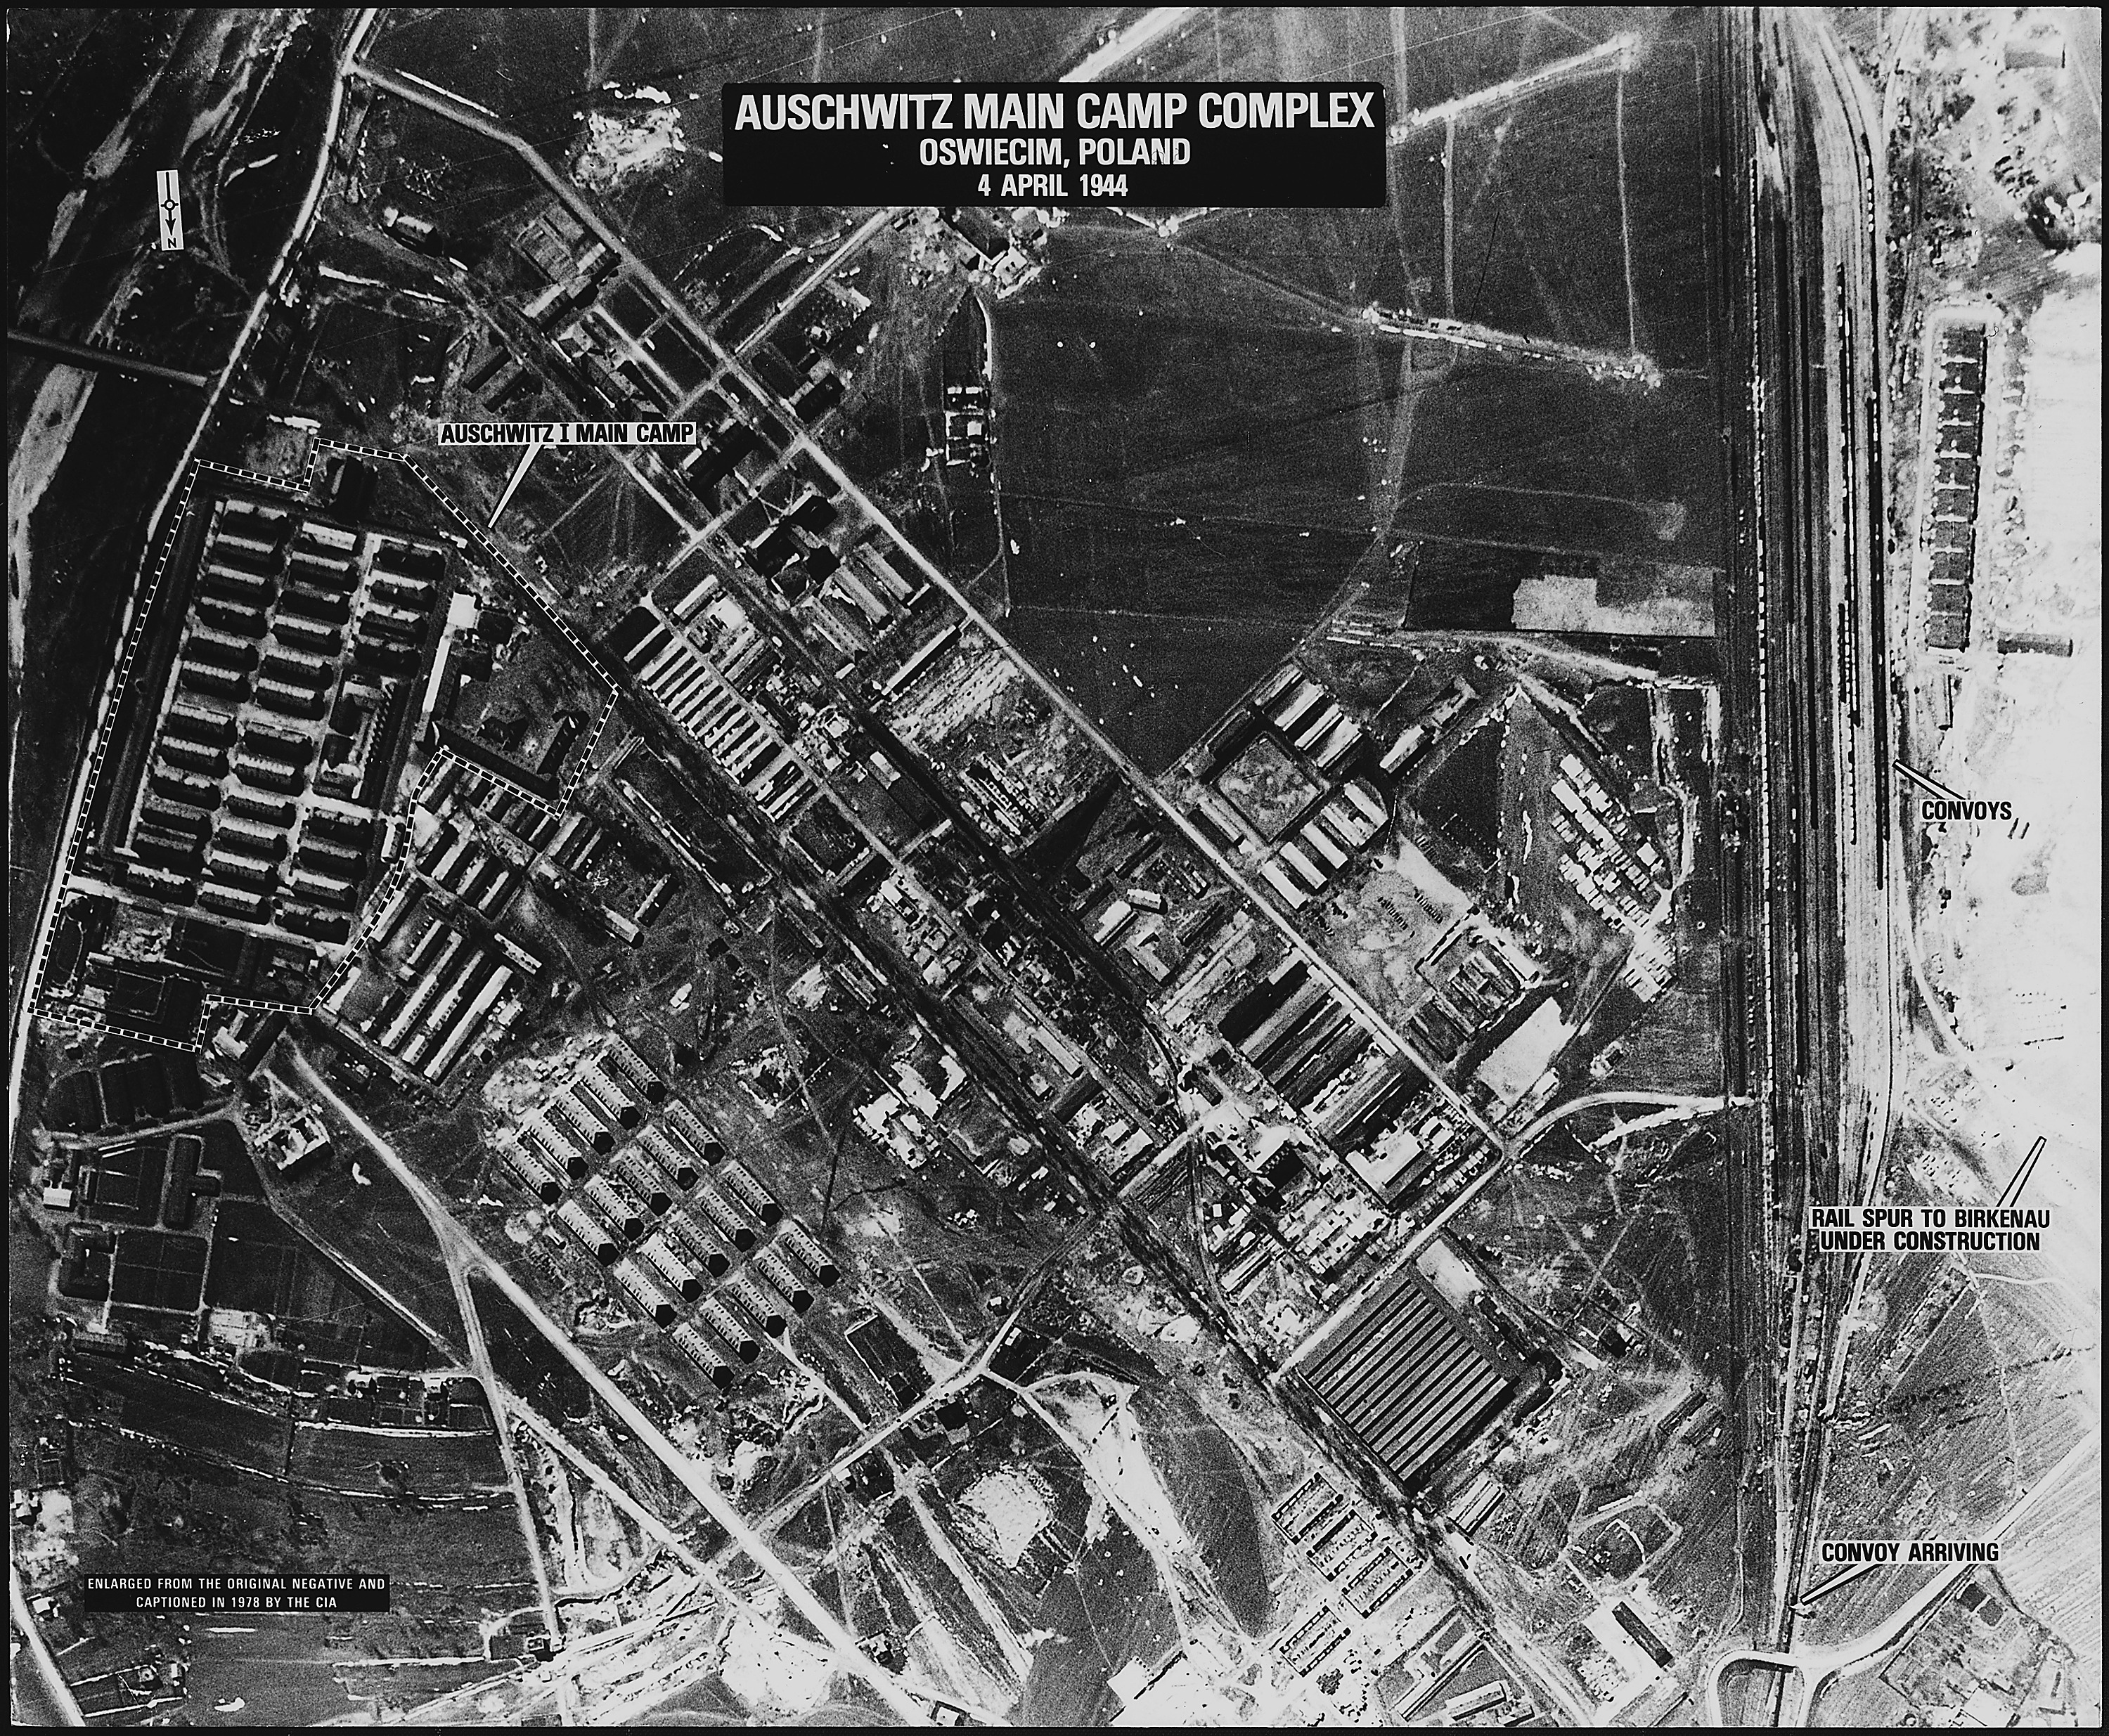 concentration camps in poland map with File Auschwitz Main C   Plex   Oswiecim  Poland   Nara   305895 on File Auschwitz Main C   plex   Oswiecim  Poland   NARA   305895 moreover Juden ausweisung polen 1938 also Section 3 furthermore Auschwitz 3872433 together with Emig33.